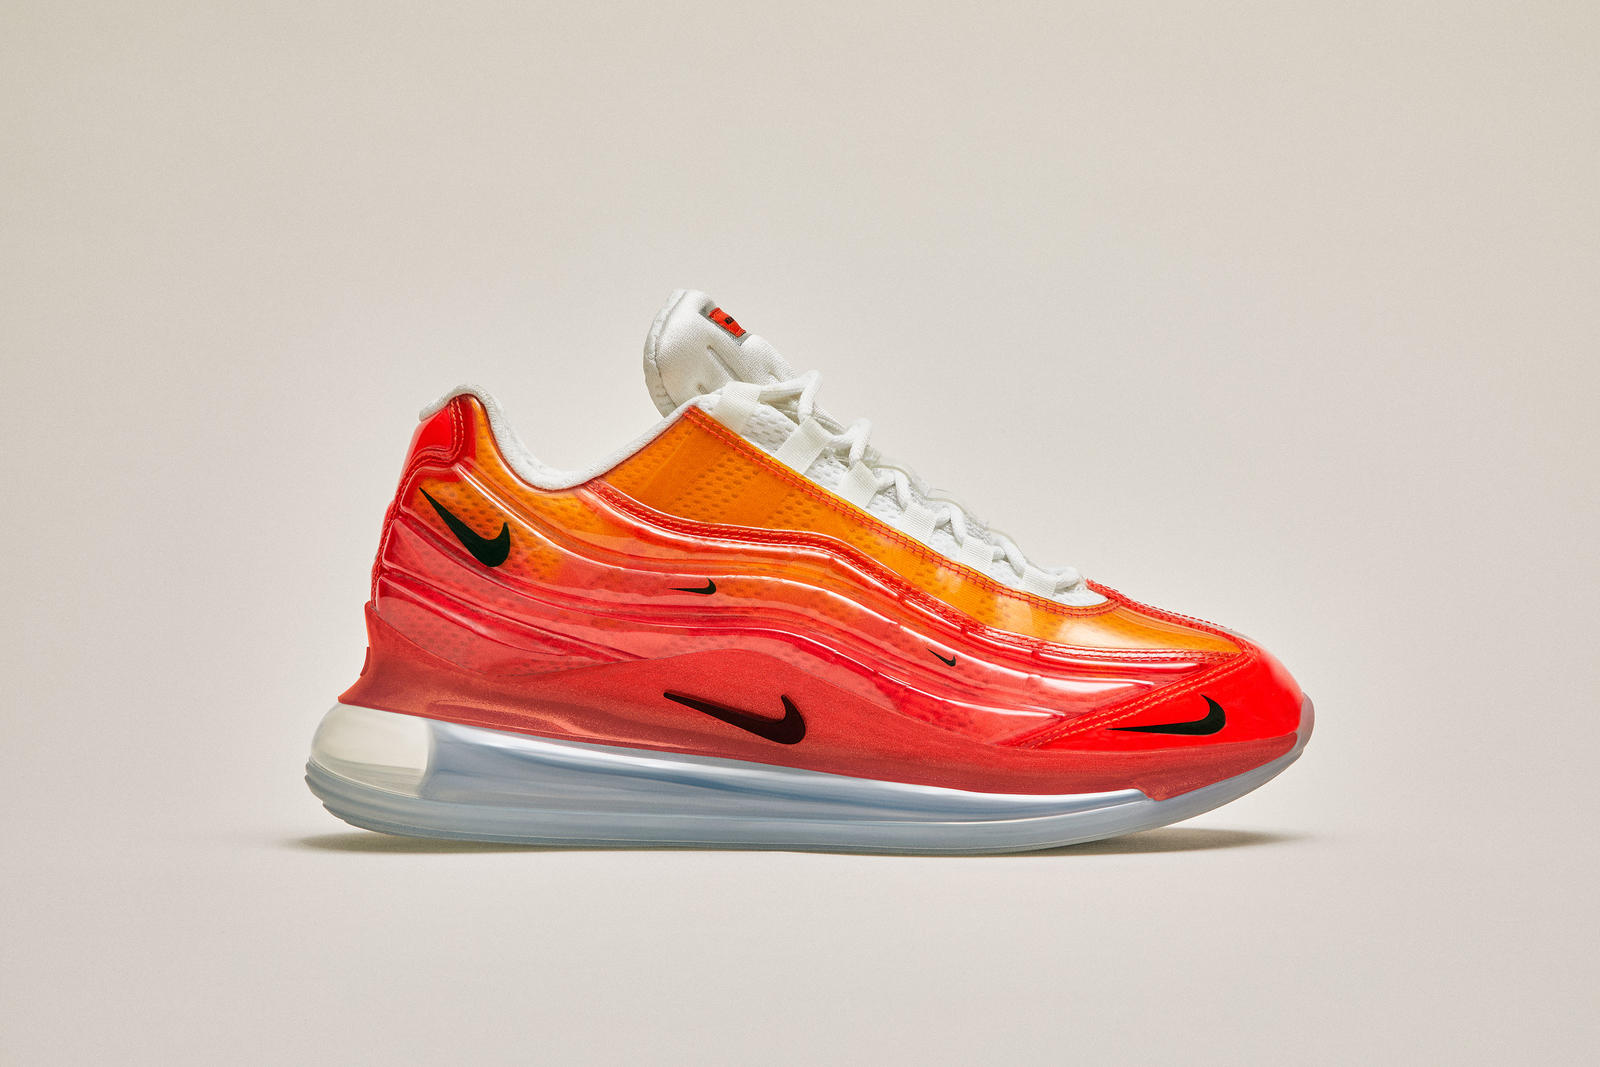 best loved b9df1 12b86 The Nike Air Max 720 95 Heron Preston By You marries the Air Max 720 and  Air Max 95 while highlighting the Air-Sole with an Air-wrapped upper. The  shoe is ...